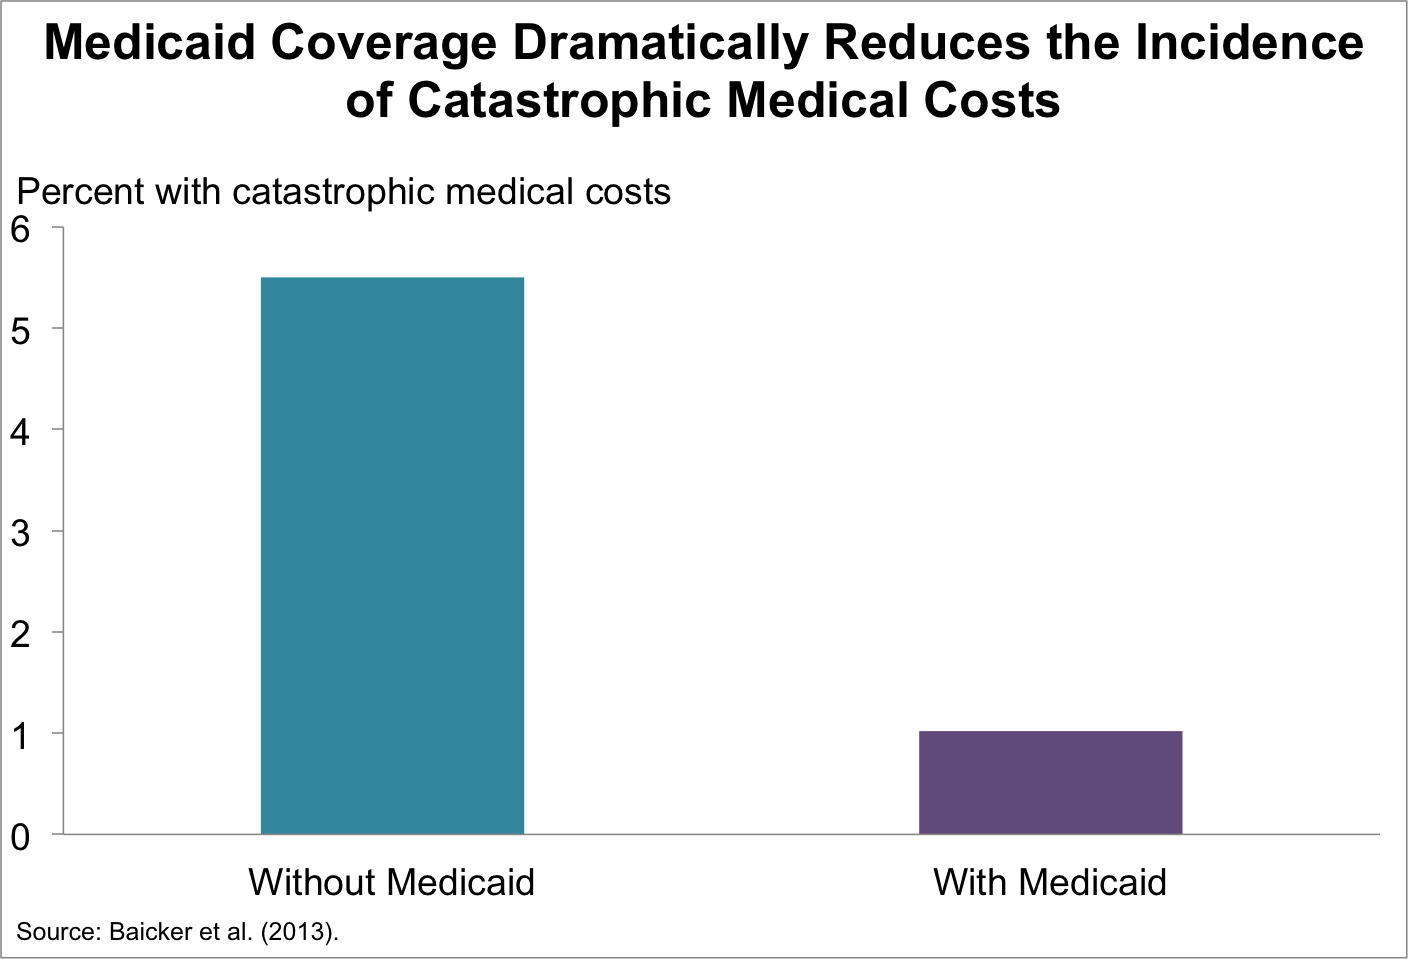 medicaid coverage reduces catastrophic medicaid costs